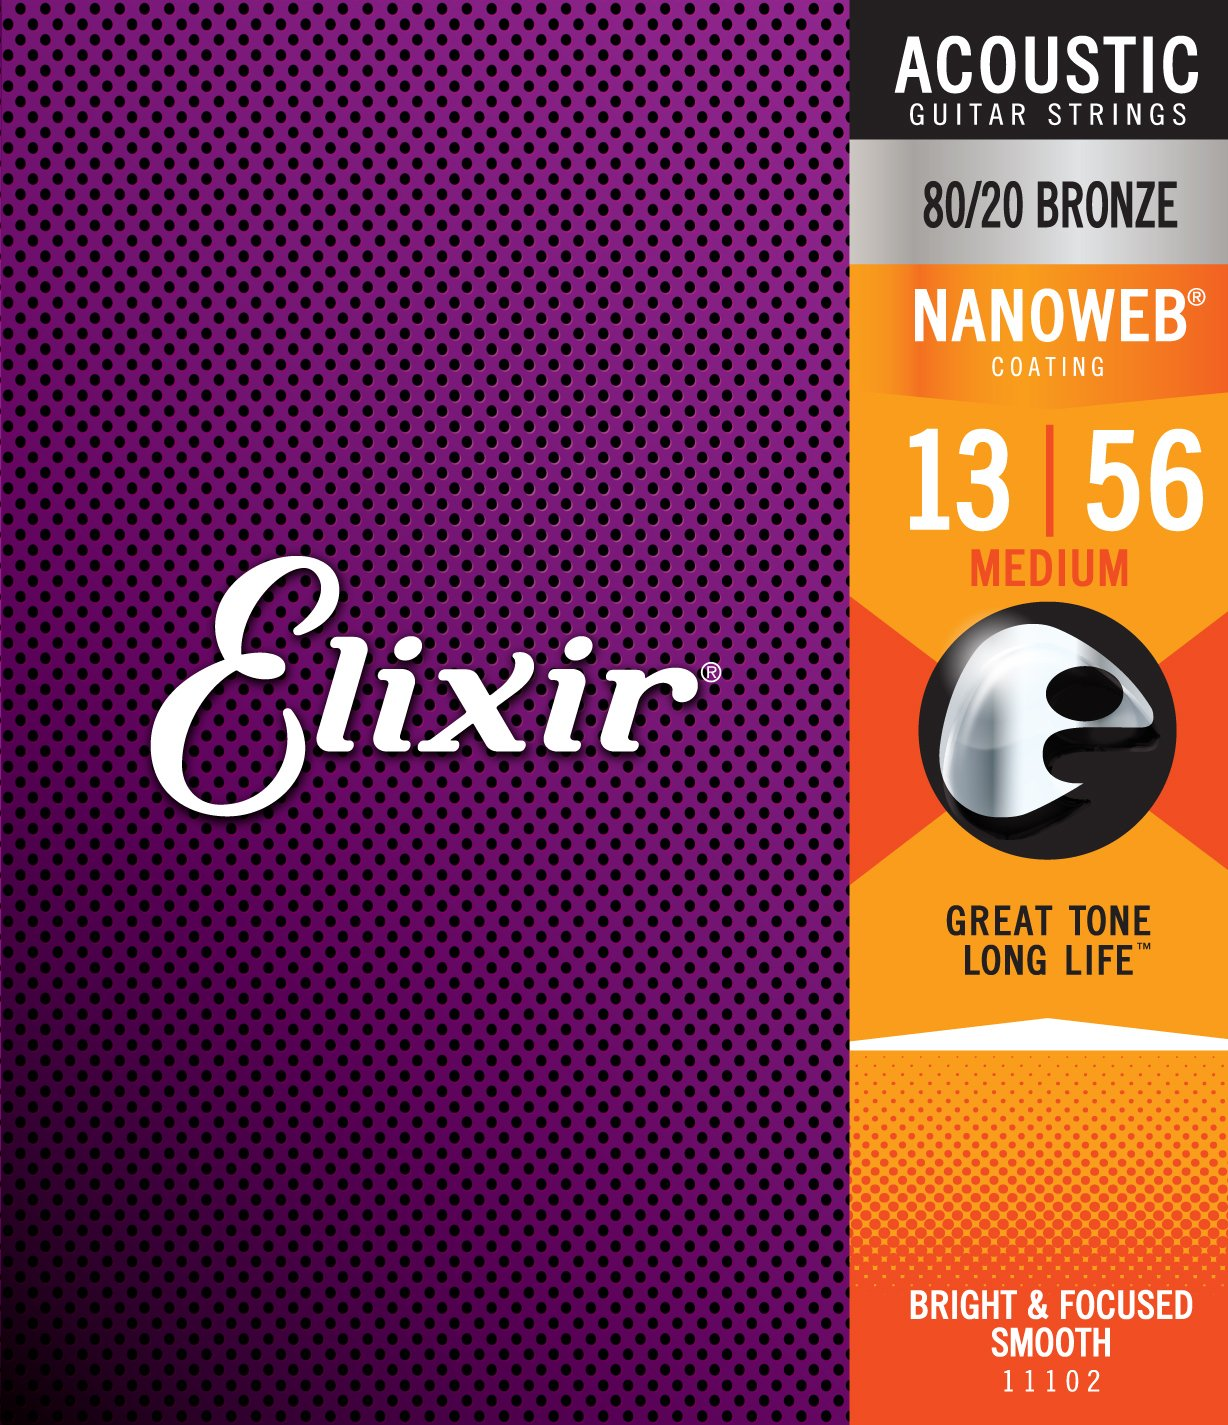 Elixir 11102 Nanoweb 80/20 Bronze Acoustic Strings, Medium, 13-56